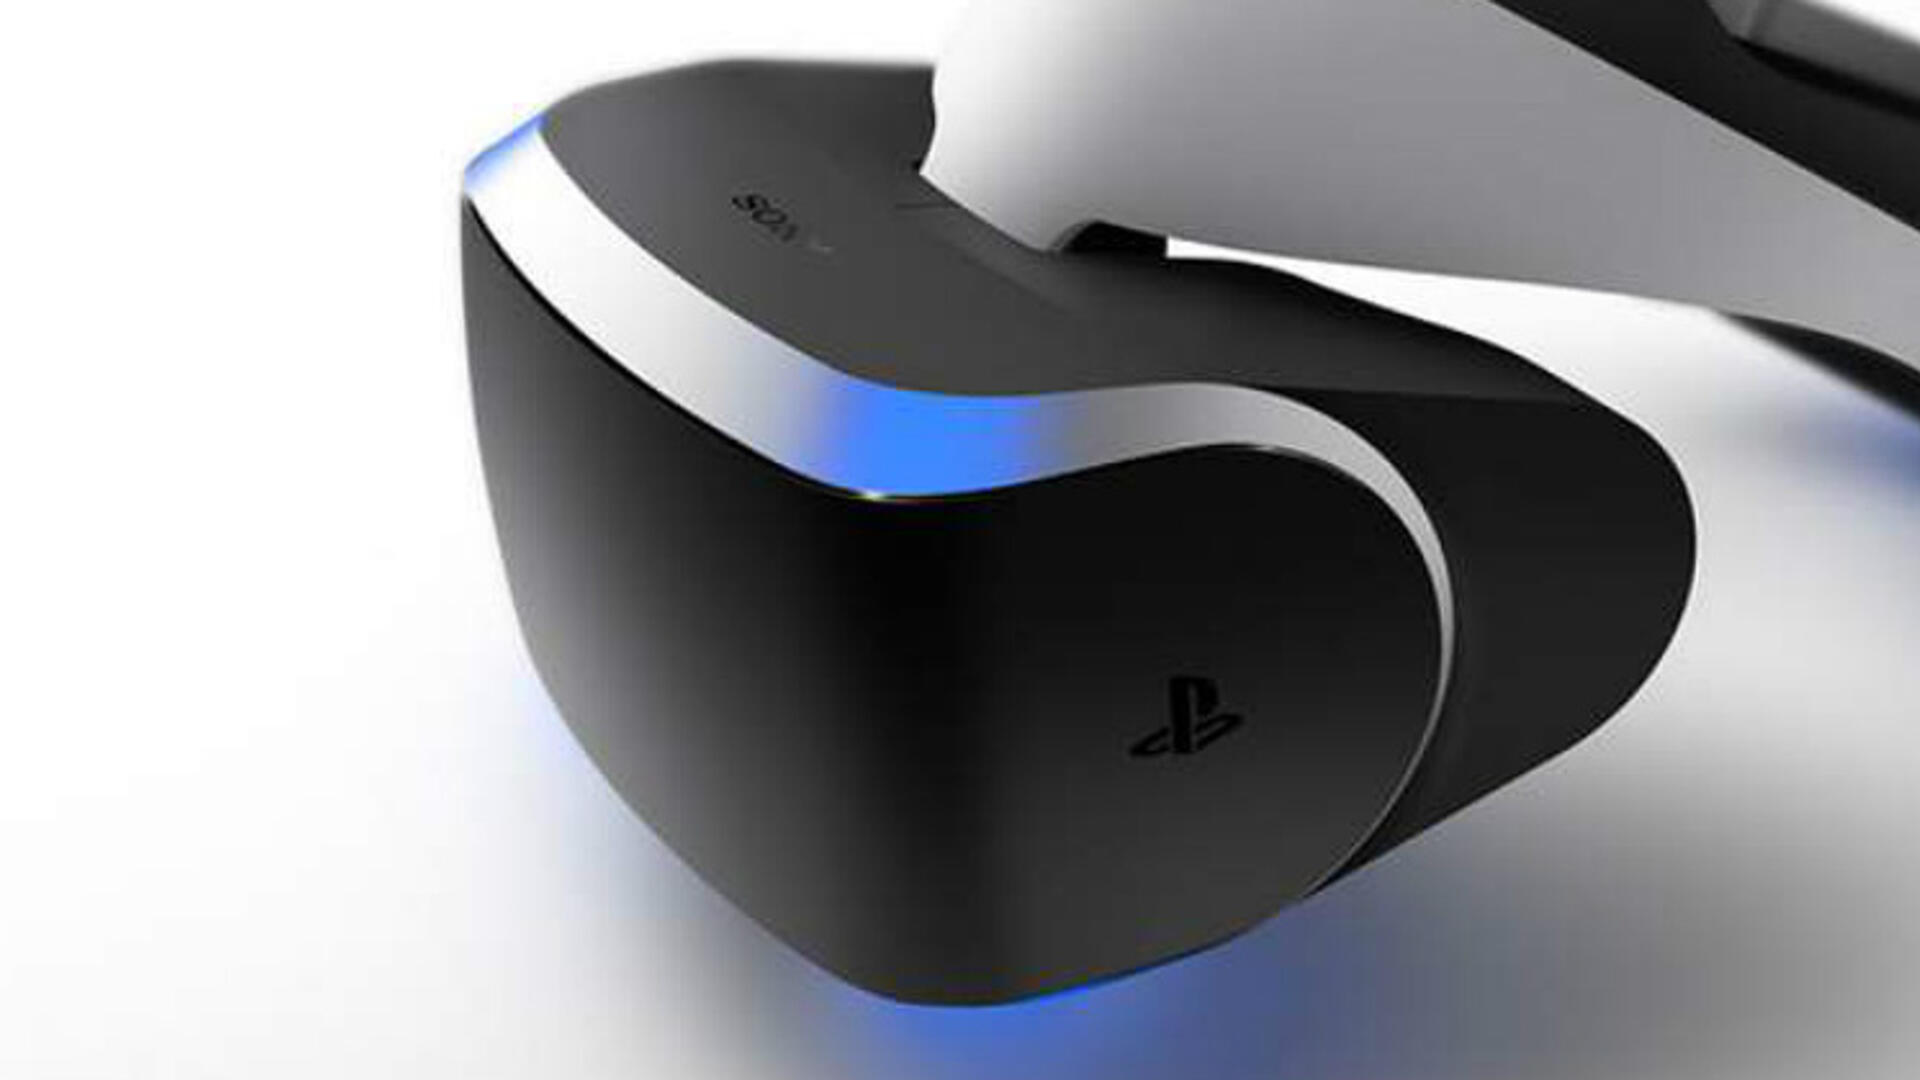 The PlayStation VR Bundle is Going on Sale For Even Cheaper Than on Black Friday